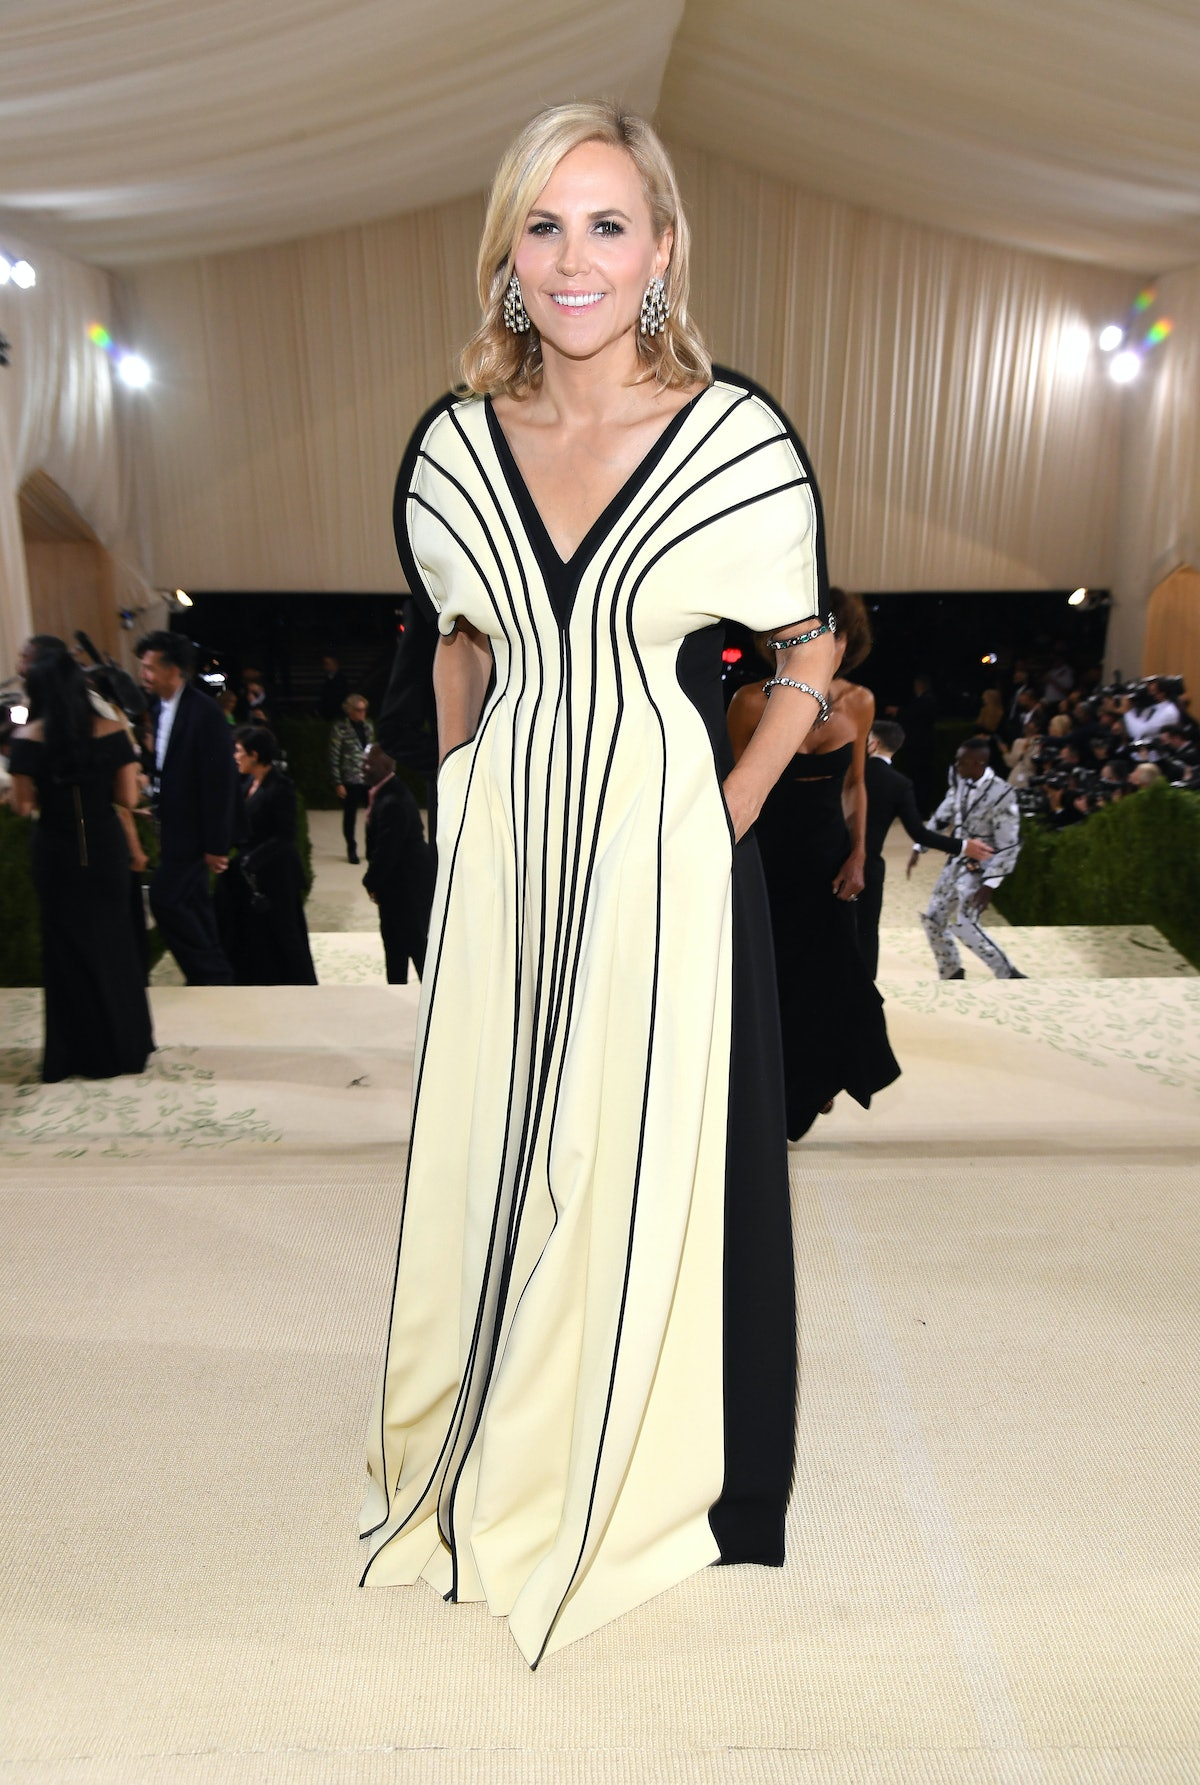 Tory Burch attends The 2021 Met Gala Celebrating In America: A Lexicon Of Fashion at Metropolitan Mu...